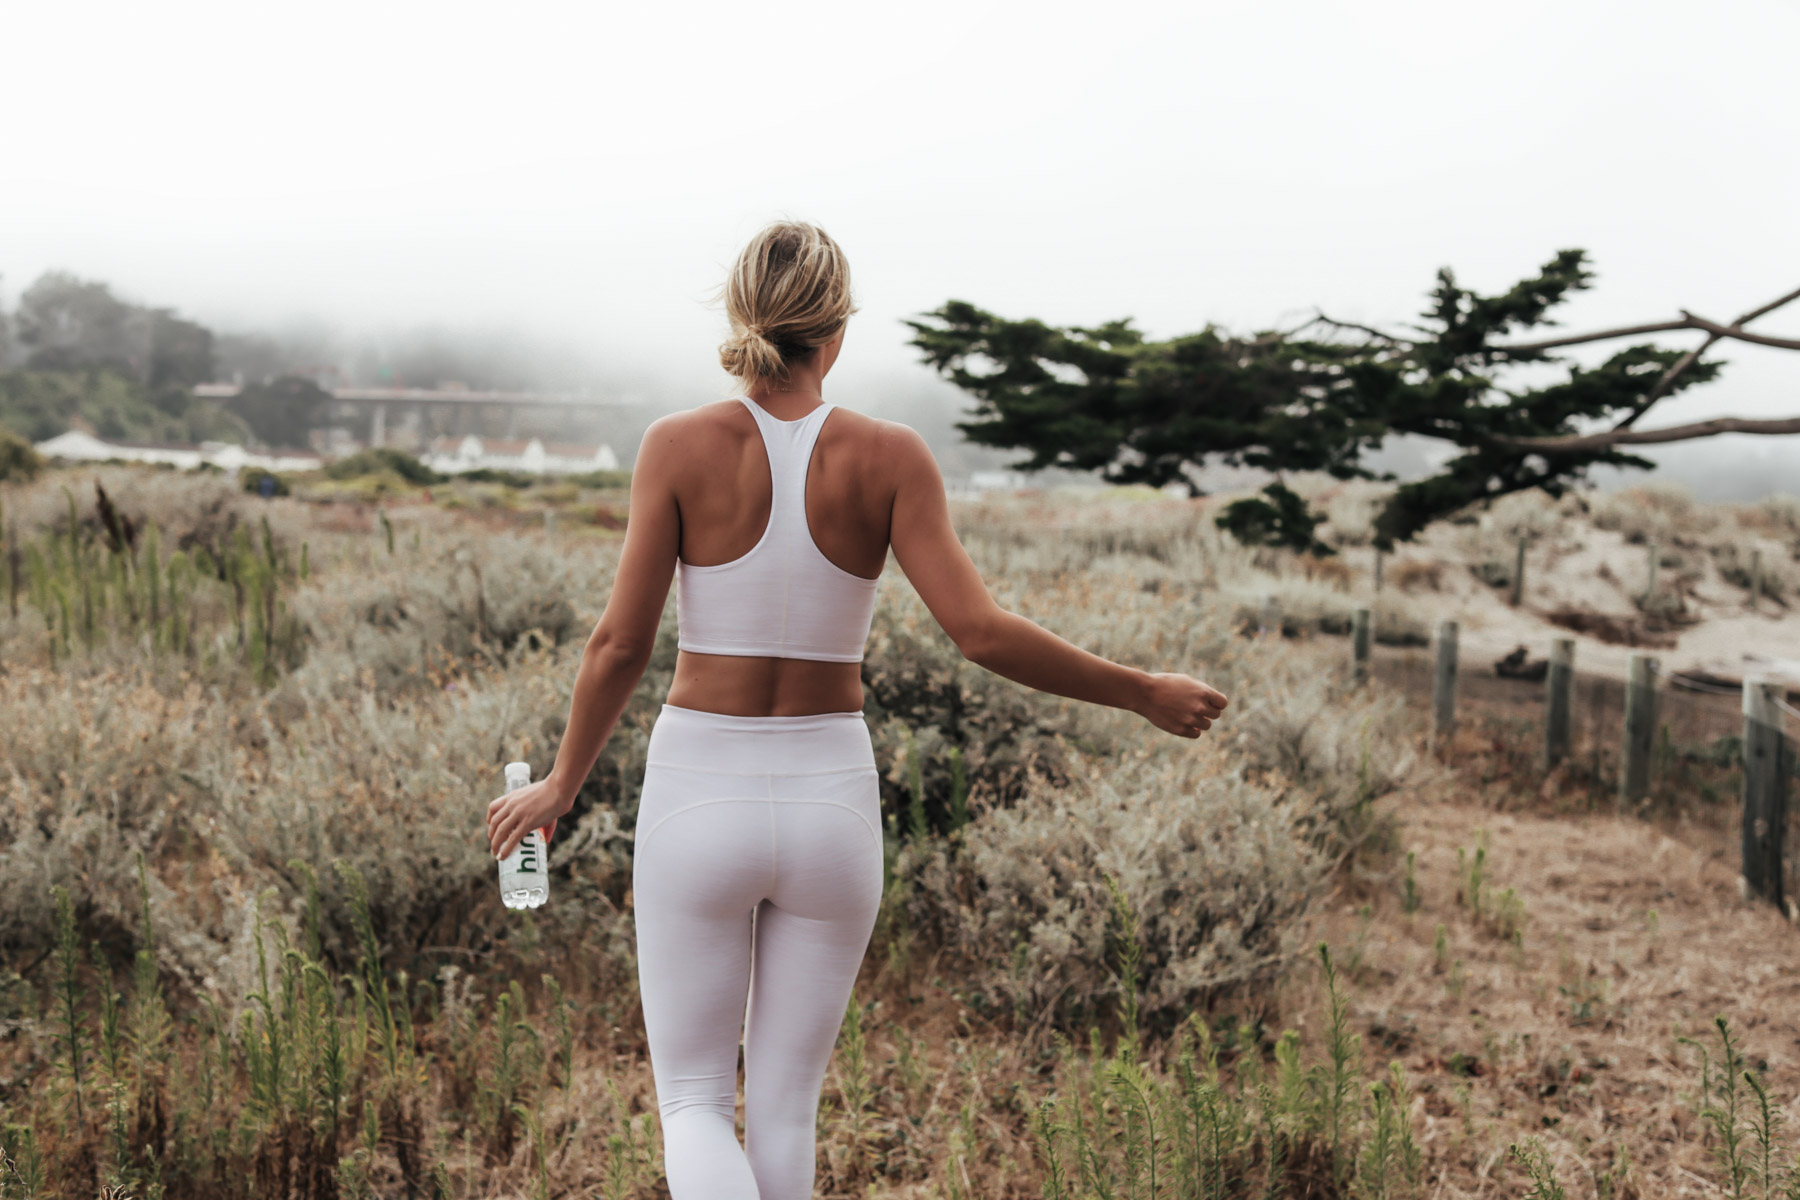 outdoor voices leggings and crop top